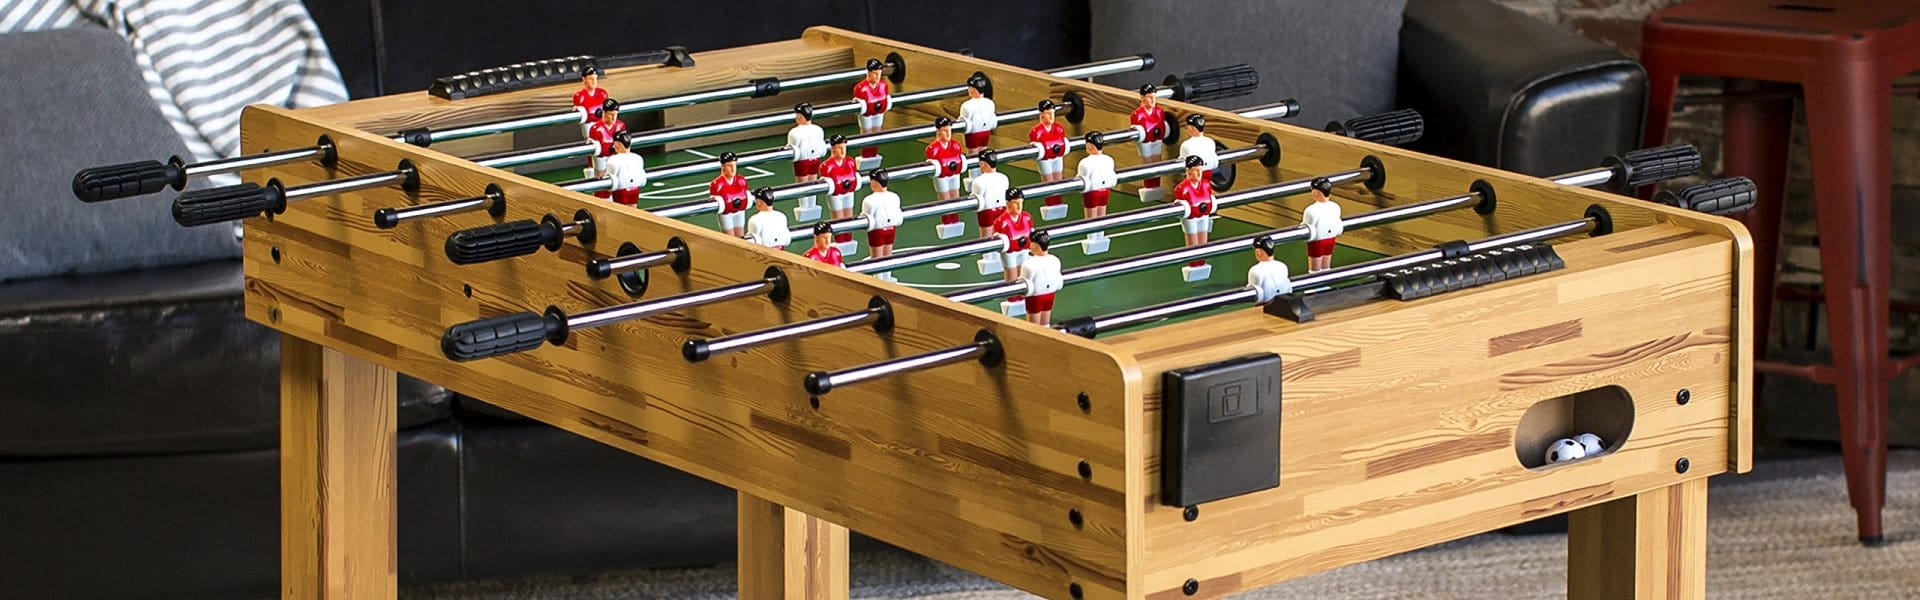 Best Wood Foosball Tables Reviewed in Detail